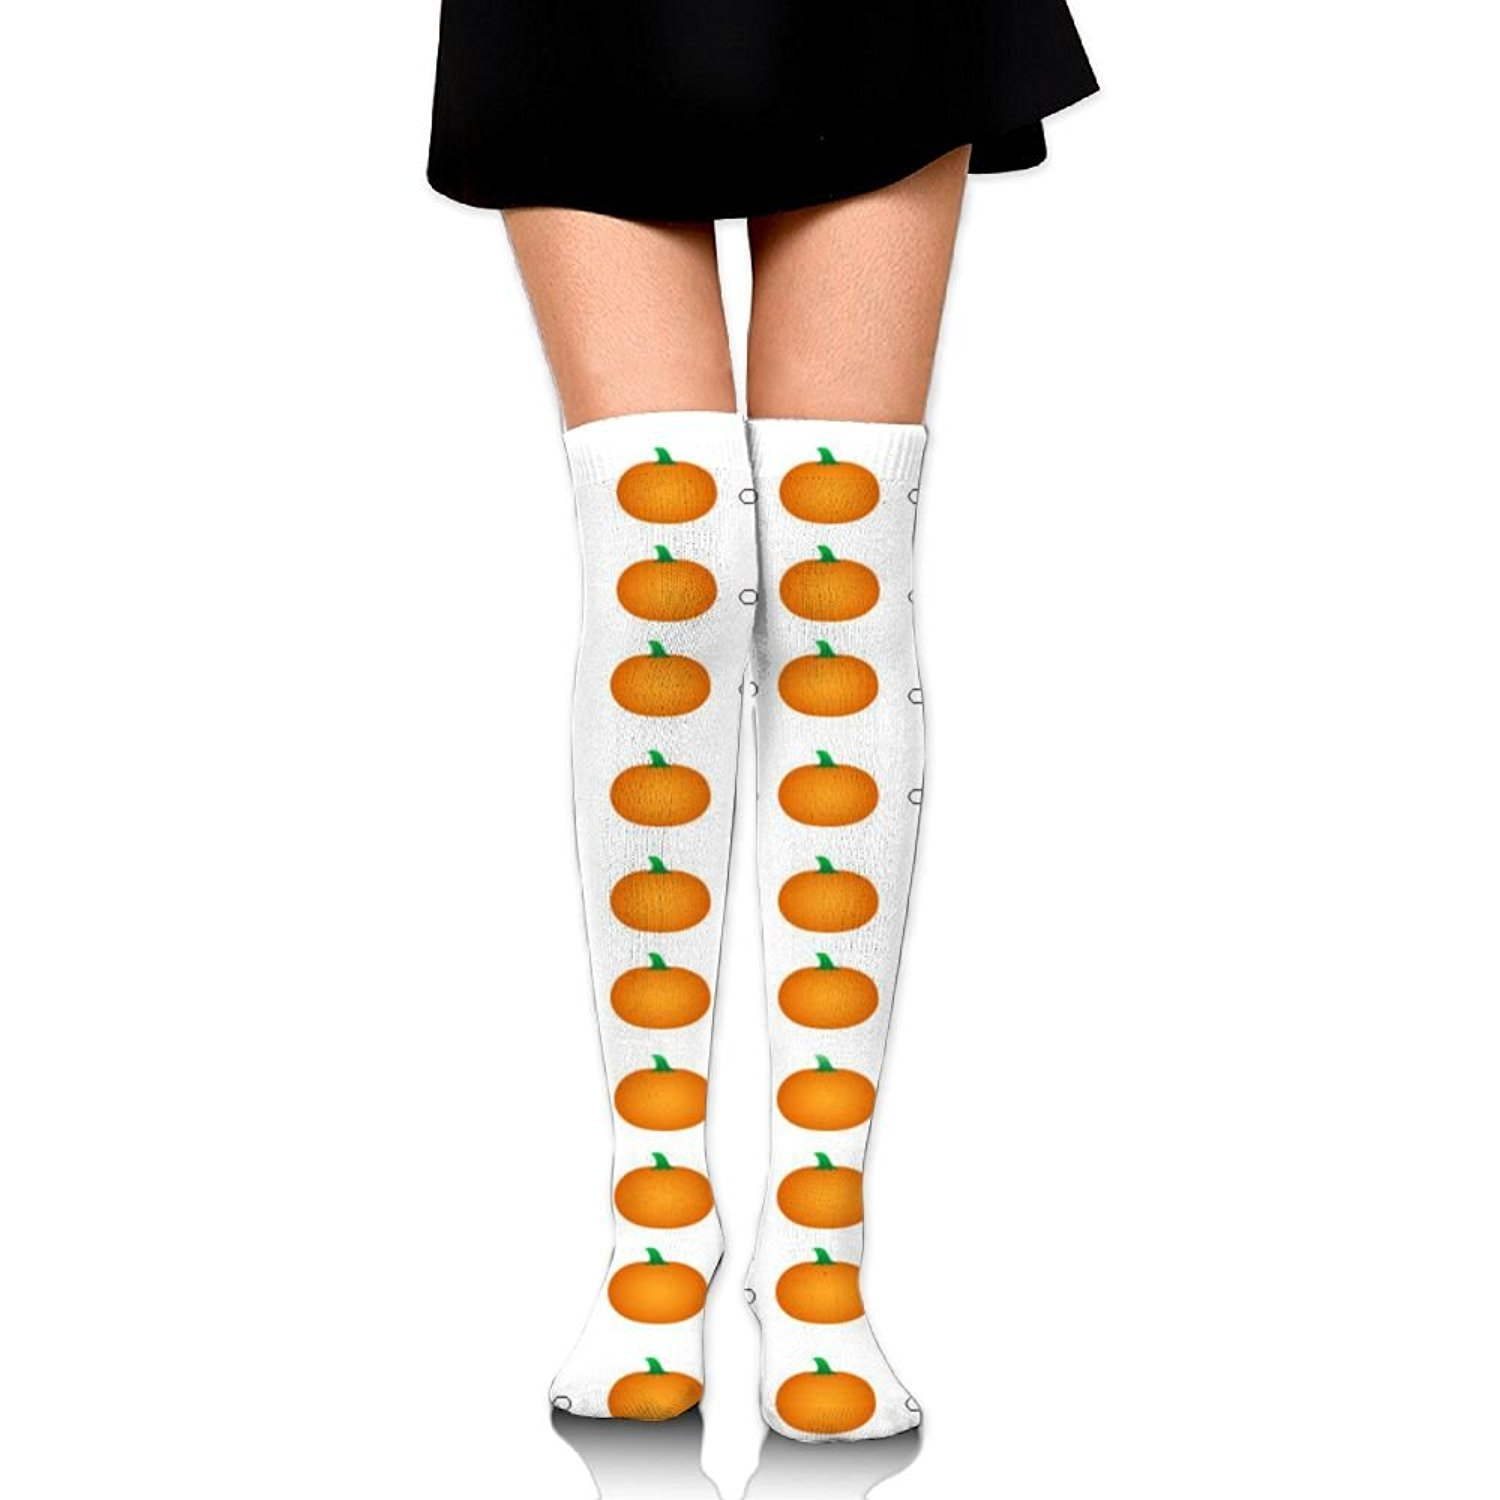 Zaqxsw Pumpkin Vegetables Women Vintage Thigh High Socks Long Socks For Girls